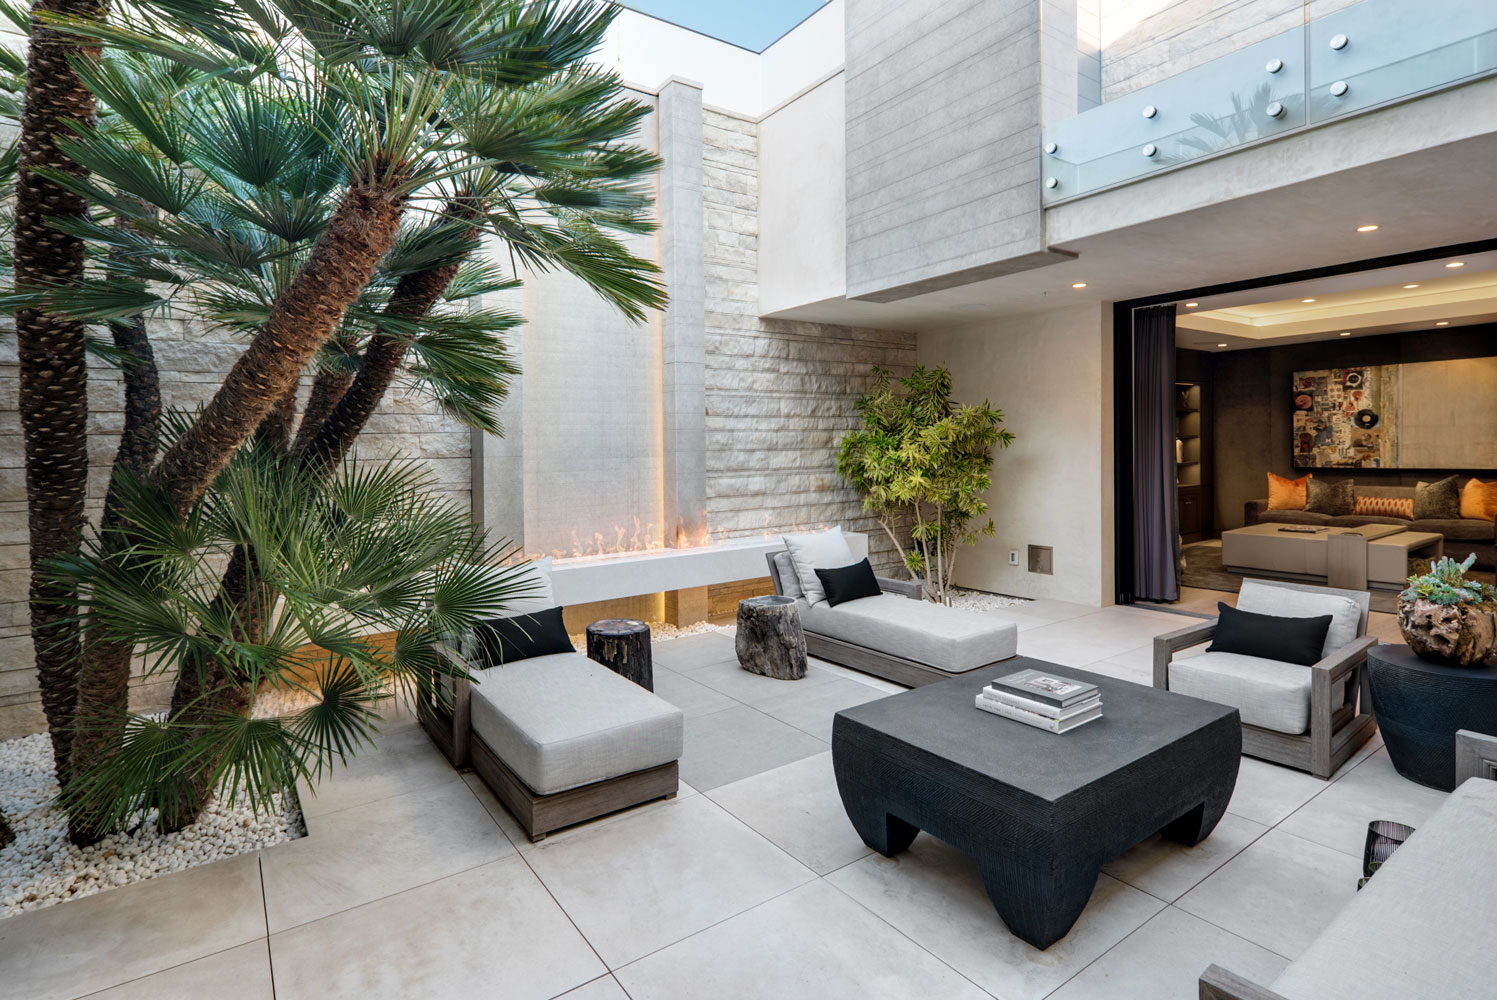 Contemporary-Courtyard-Outdoor-Firepit-Retractable-Doors-Hardscaping-Corbin-Reeves.jpg